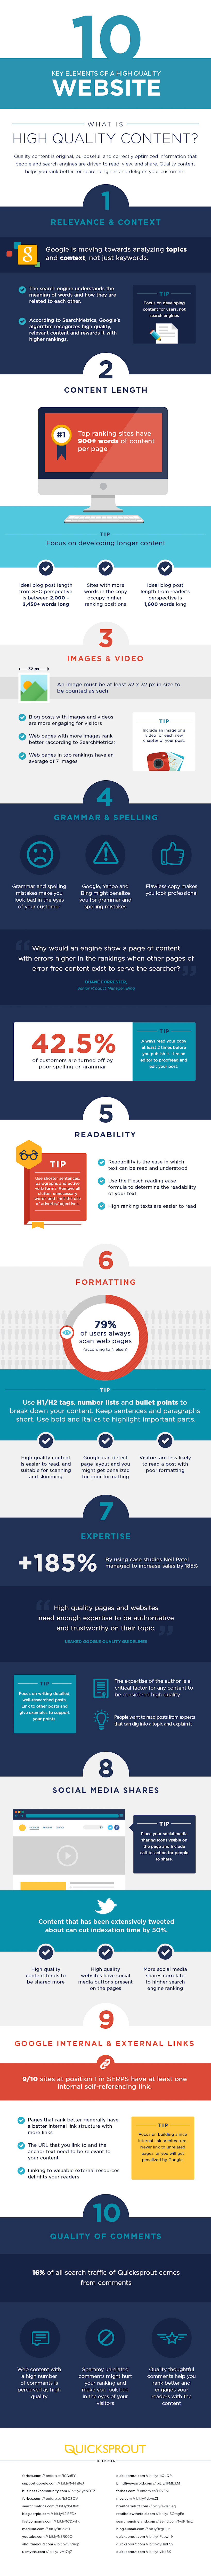 qualitycontentinfographic